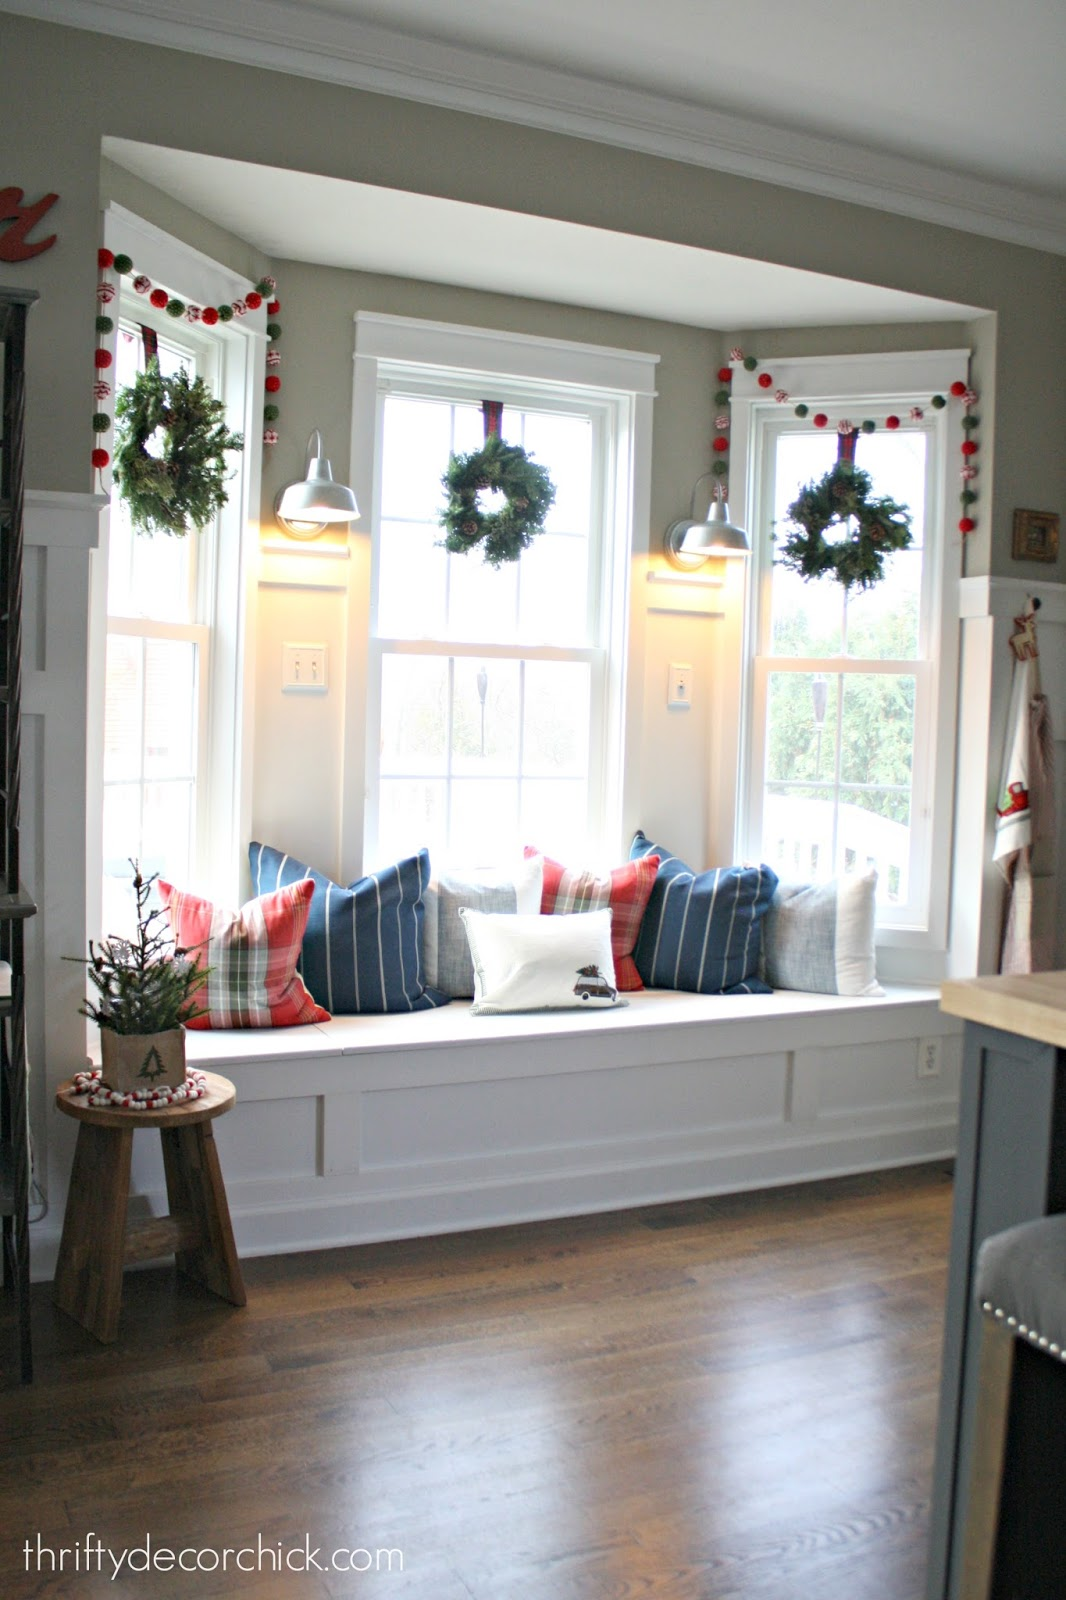 semi circle sofa for bay window tight back sectional last minute christmas home tour from thrifty decor chick